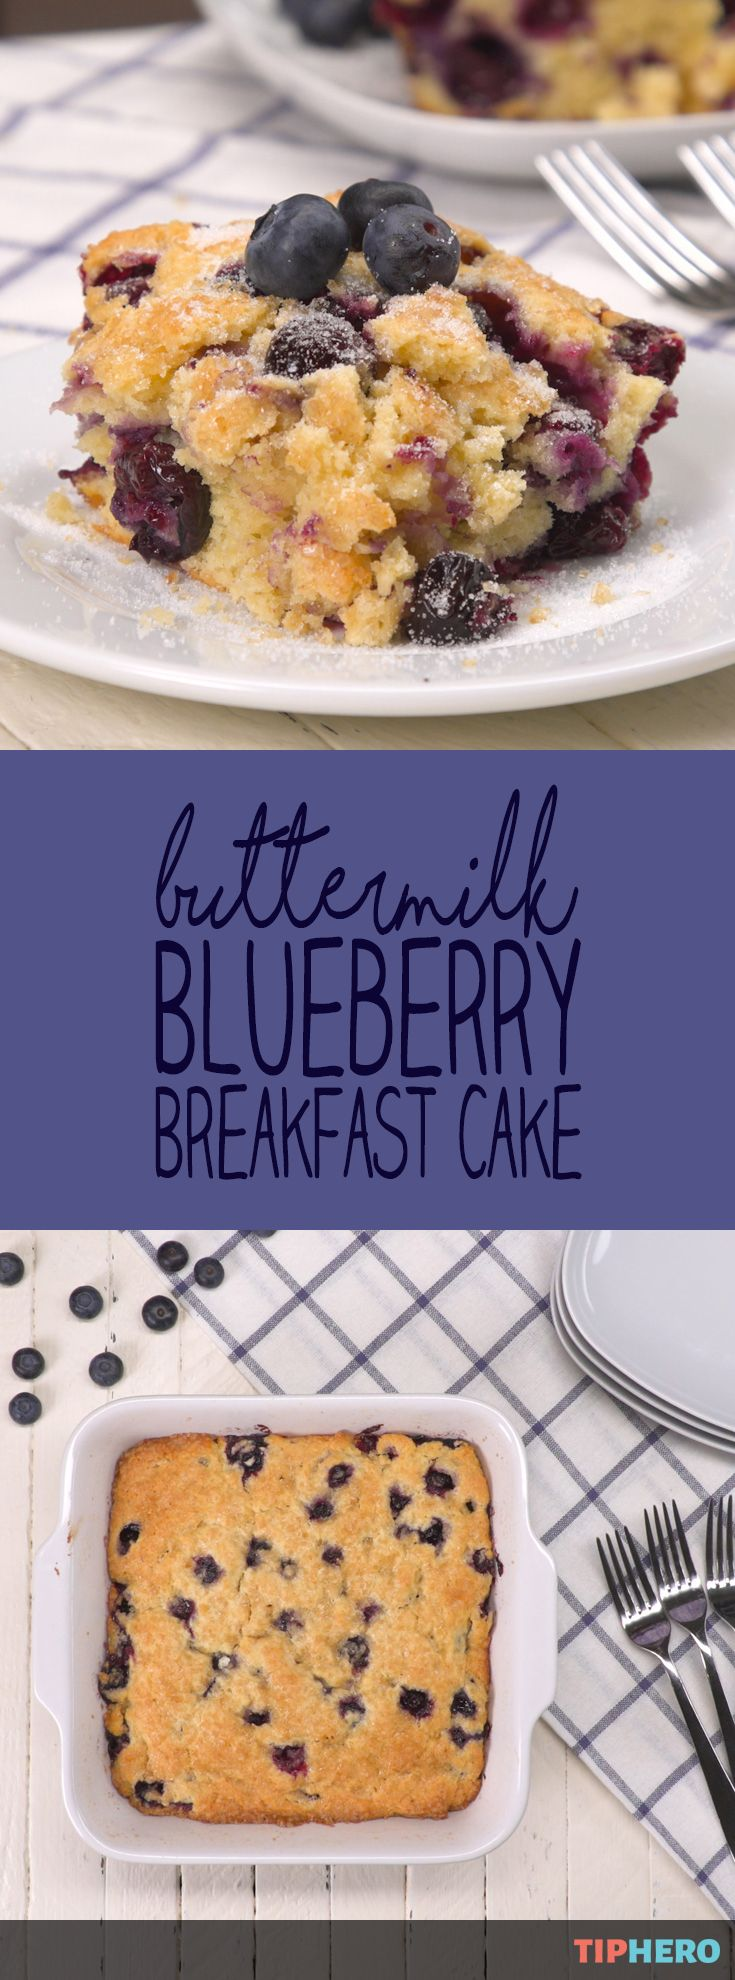 Let them eat cake for breakfast... Treat yourself first thing in the morning with some baked goodness that we swear doesn't count as dessert: buttermilk blueberry breakfast cake with a sugar-crystalized top and, inside, moist crumbs bursting with blueberries. This berry coffee cake tastes just like blueberry muffins, but without the hassle and mess of dealing with all of those muffin cups. Click for the recipe and how to video!